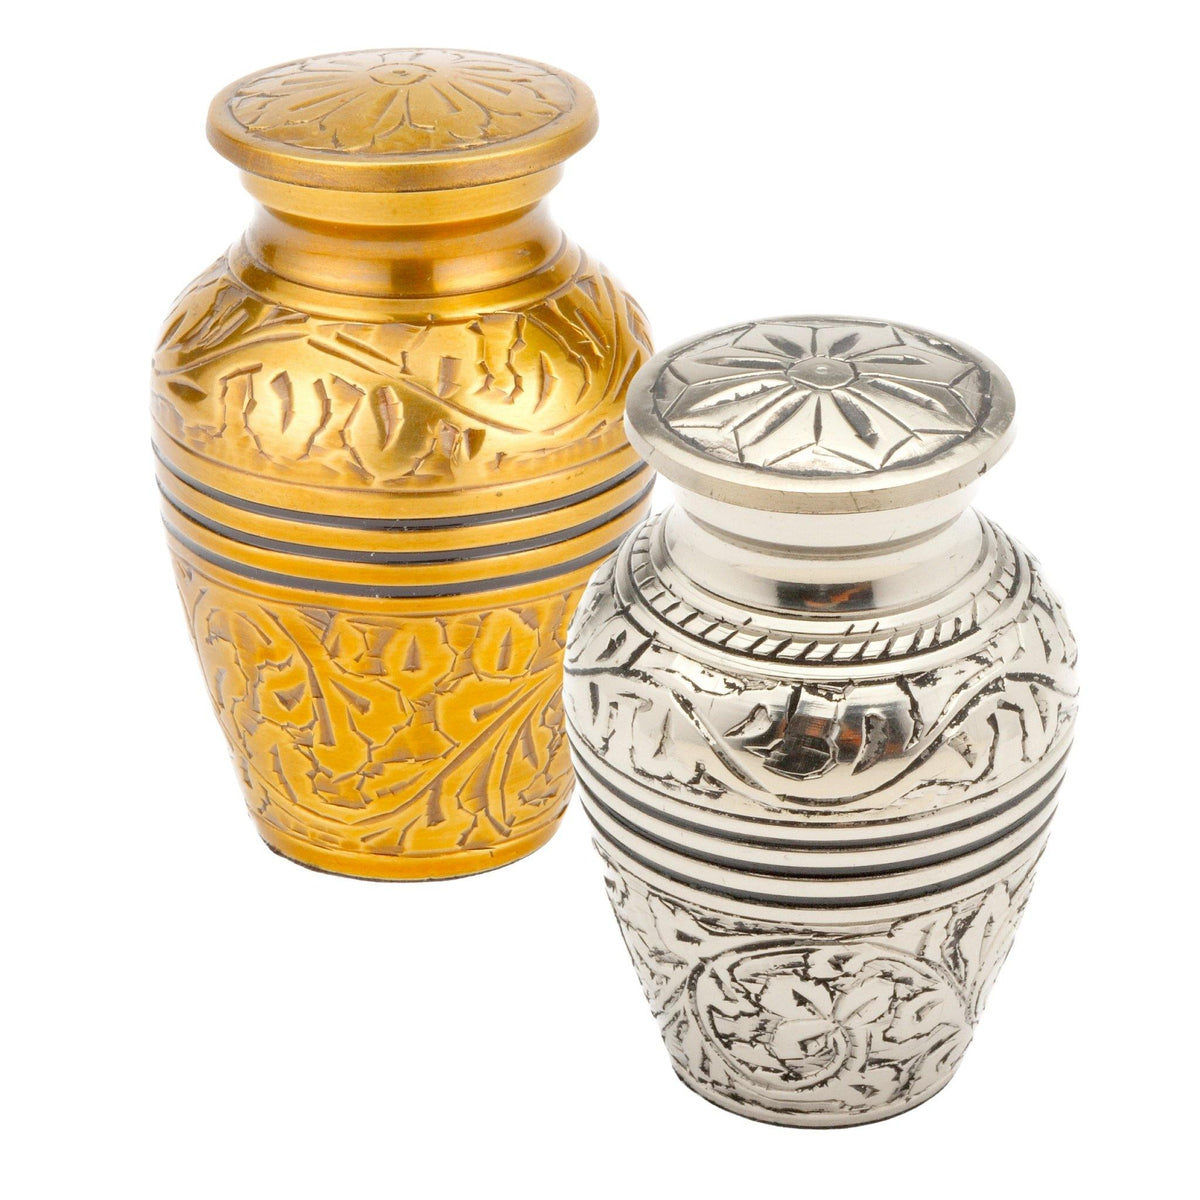 Banbury Cremation Ashes Keepsake Mini Urn - Urns UK